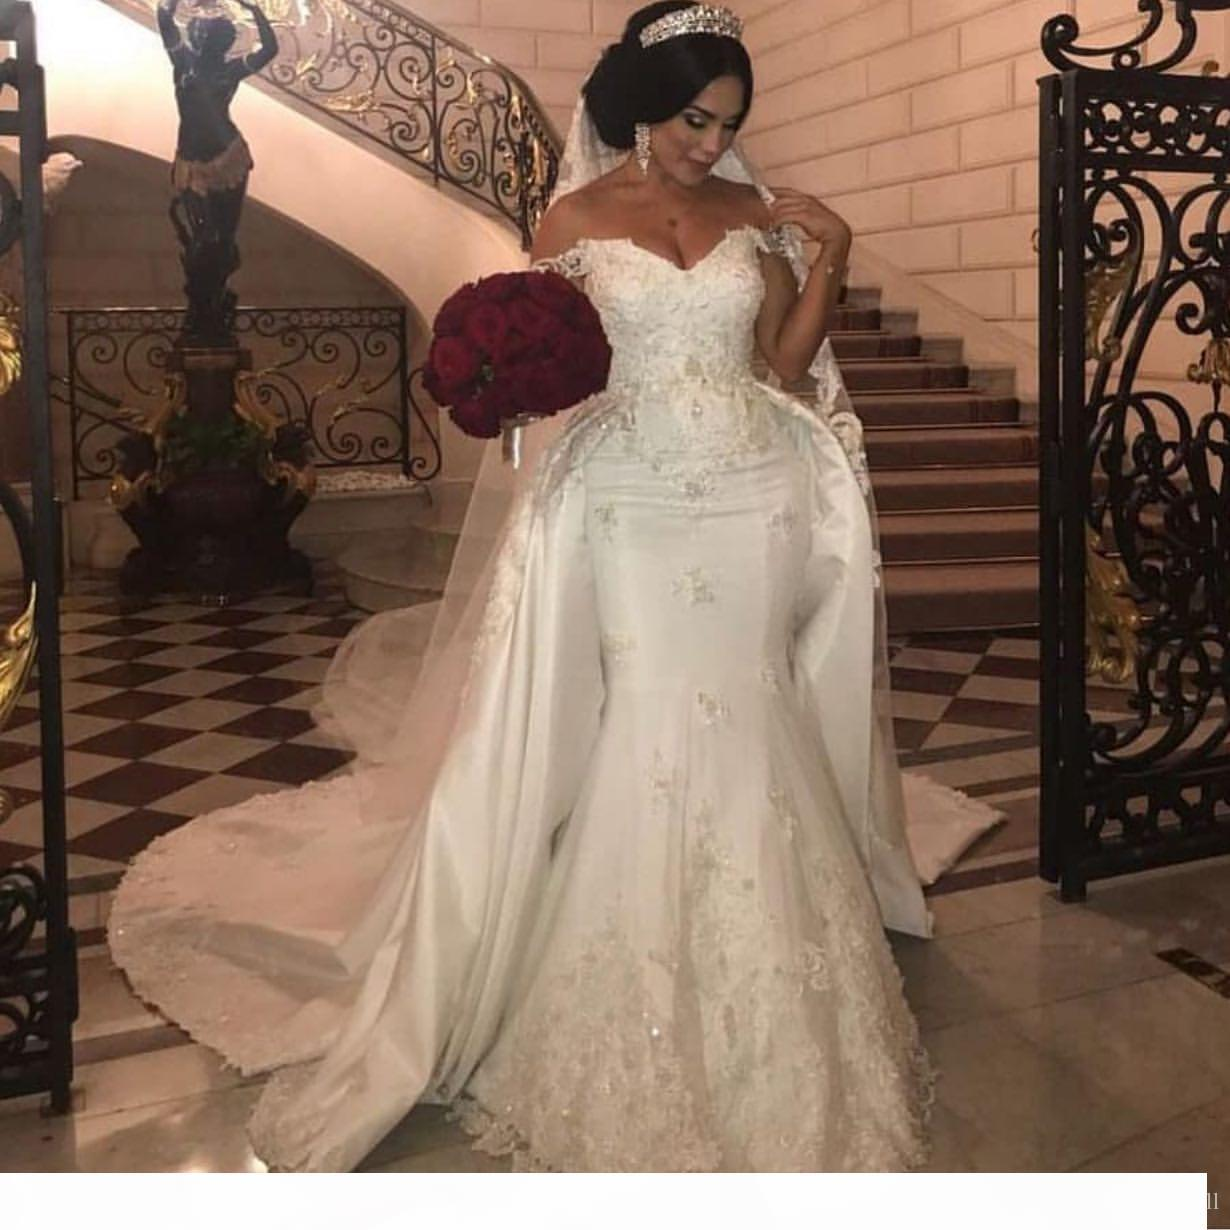 Elegant 2020 Beaded Lace Mermaid Wedding Dresses With Detachable Train Off Shoulder African Bridal Gowns Applique Ivory Satin Wedding Dress